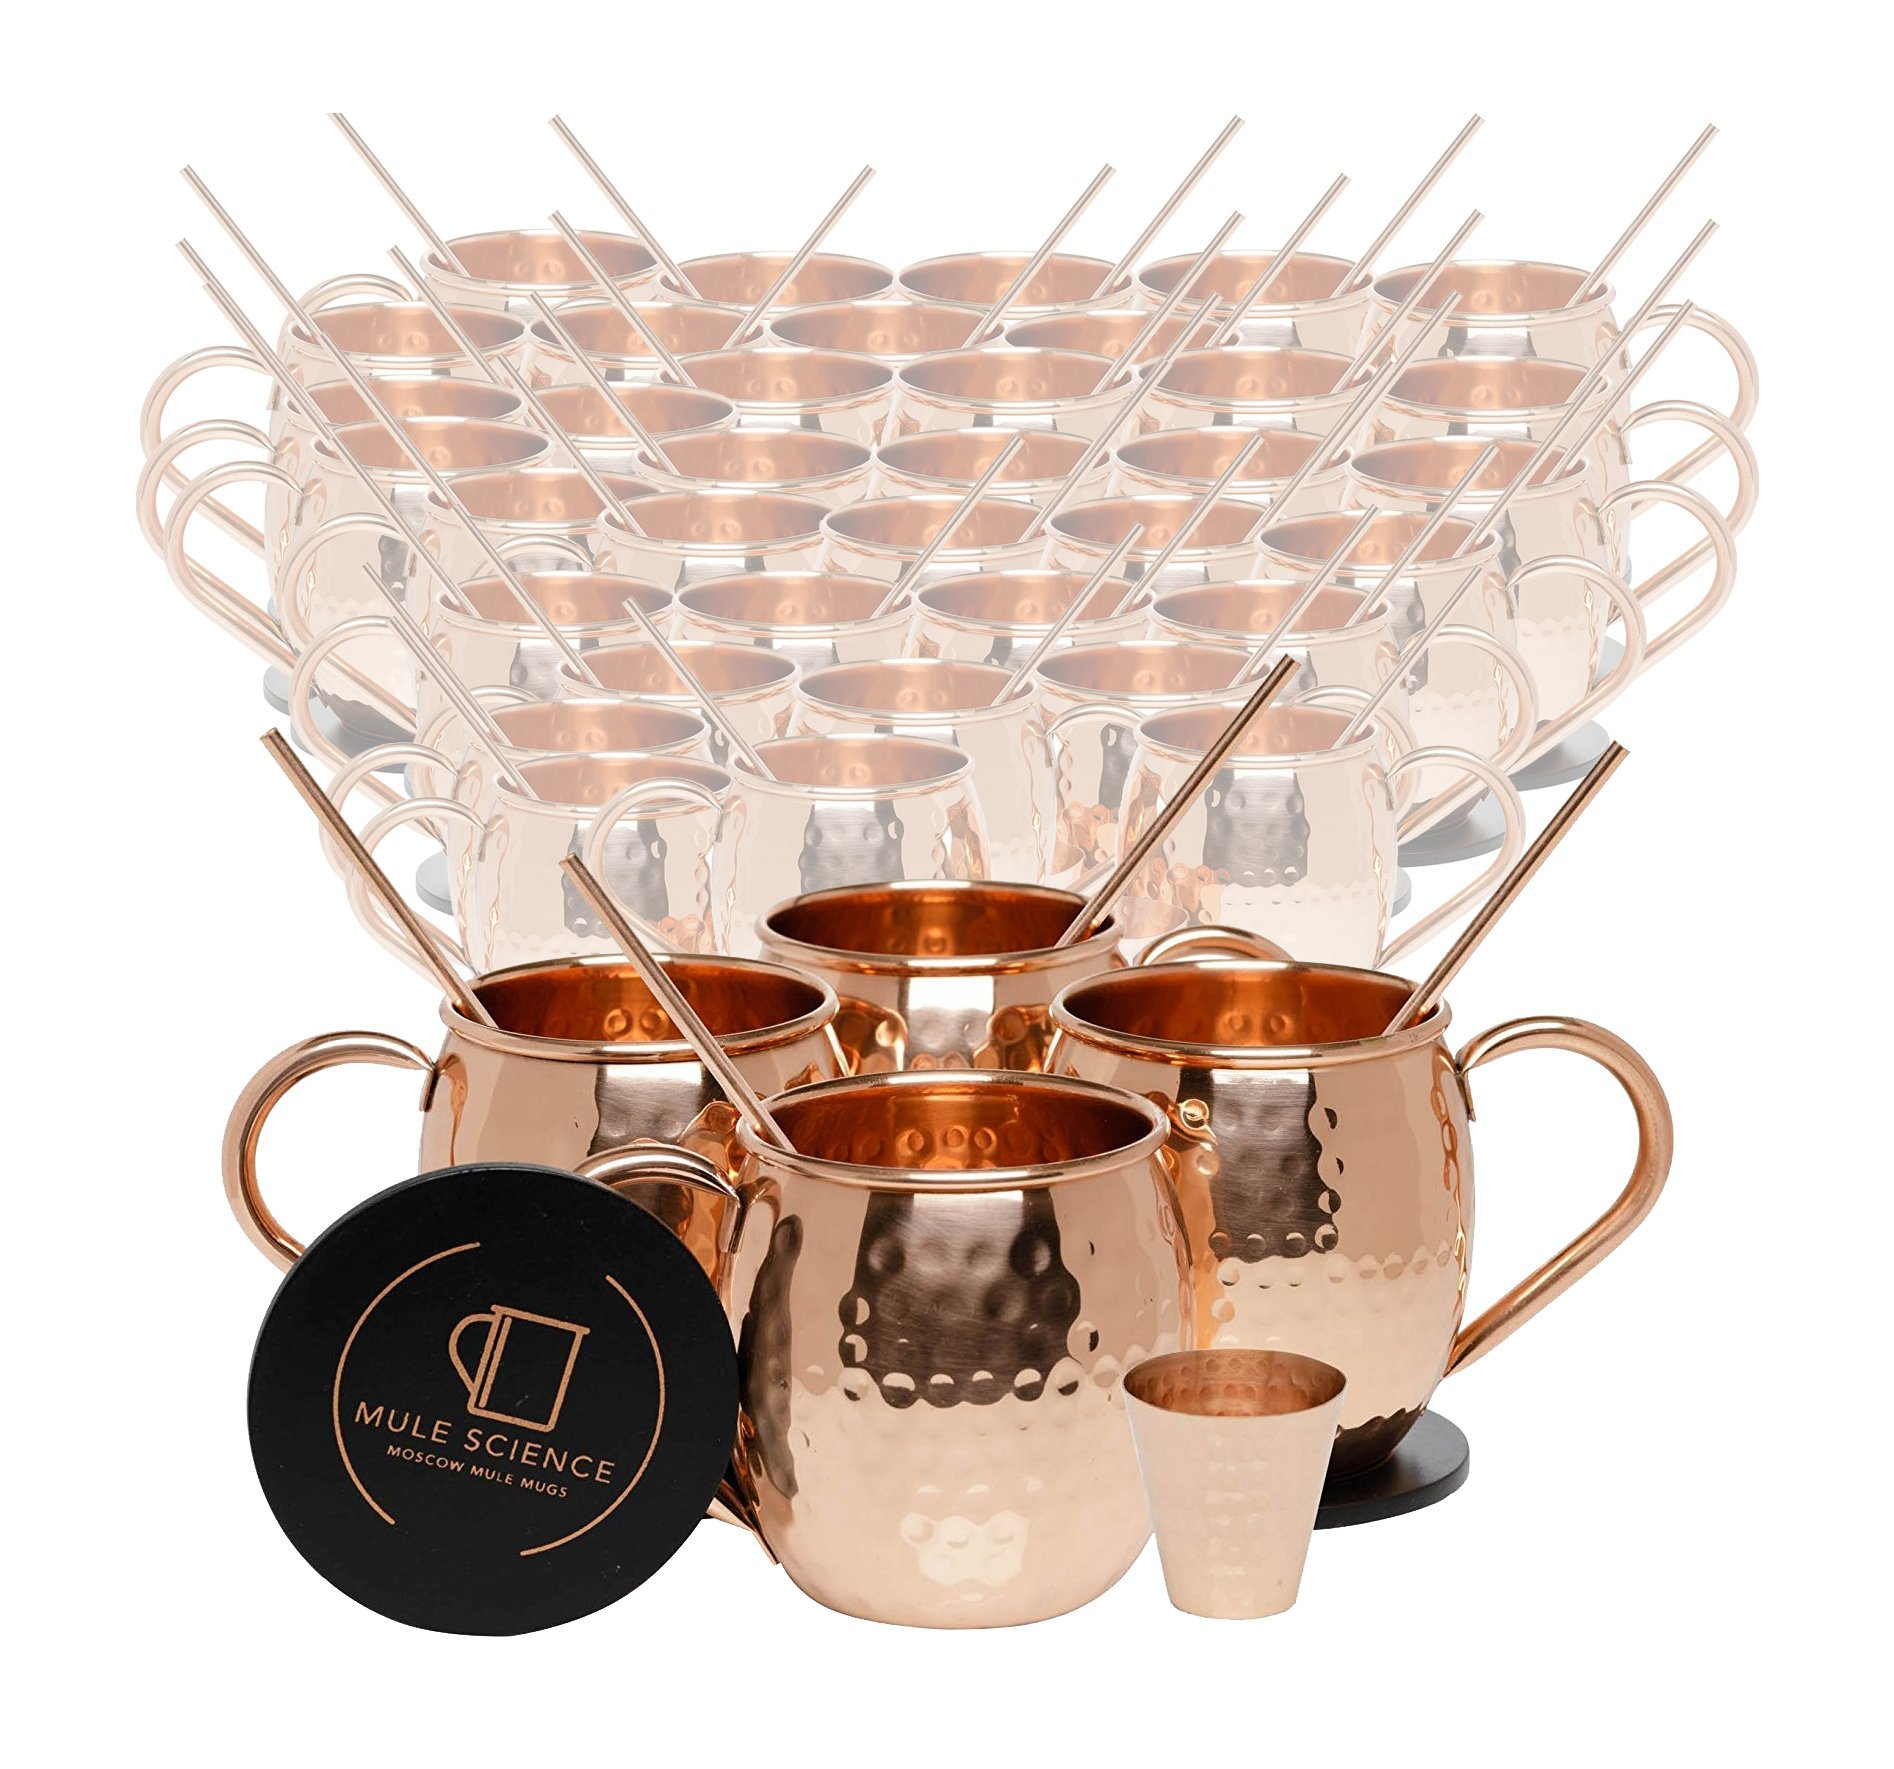 Set of 40 Pure Copper Moscow Mule Mugs by Mule Science with BONUS: Highest Quality Cocktail Copper 40 Straws, 2 Shot glasses and 40 coasters! by Advanced Mixology (Image #1)